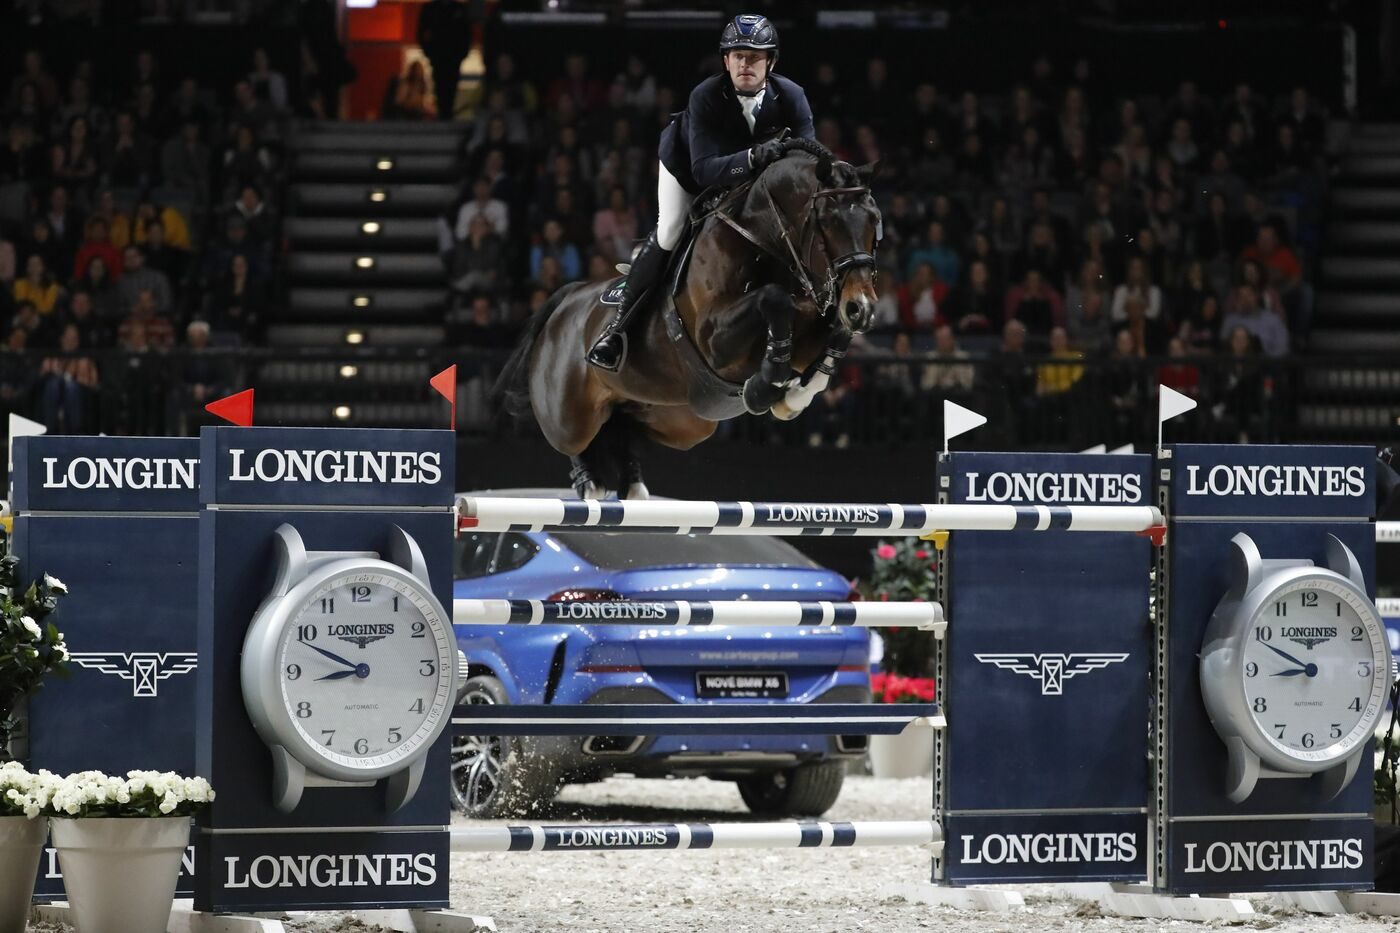 Longines Show Jumping Event: Mind-blowing victory of Ben Maher who becomes the champion of the Longines Global Champions Tour Super Grand Prix 2